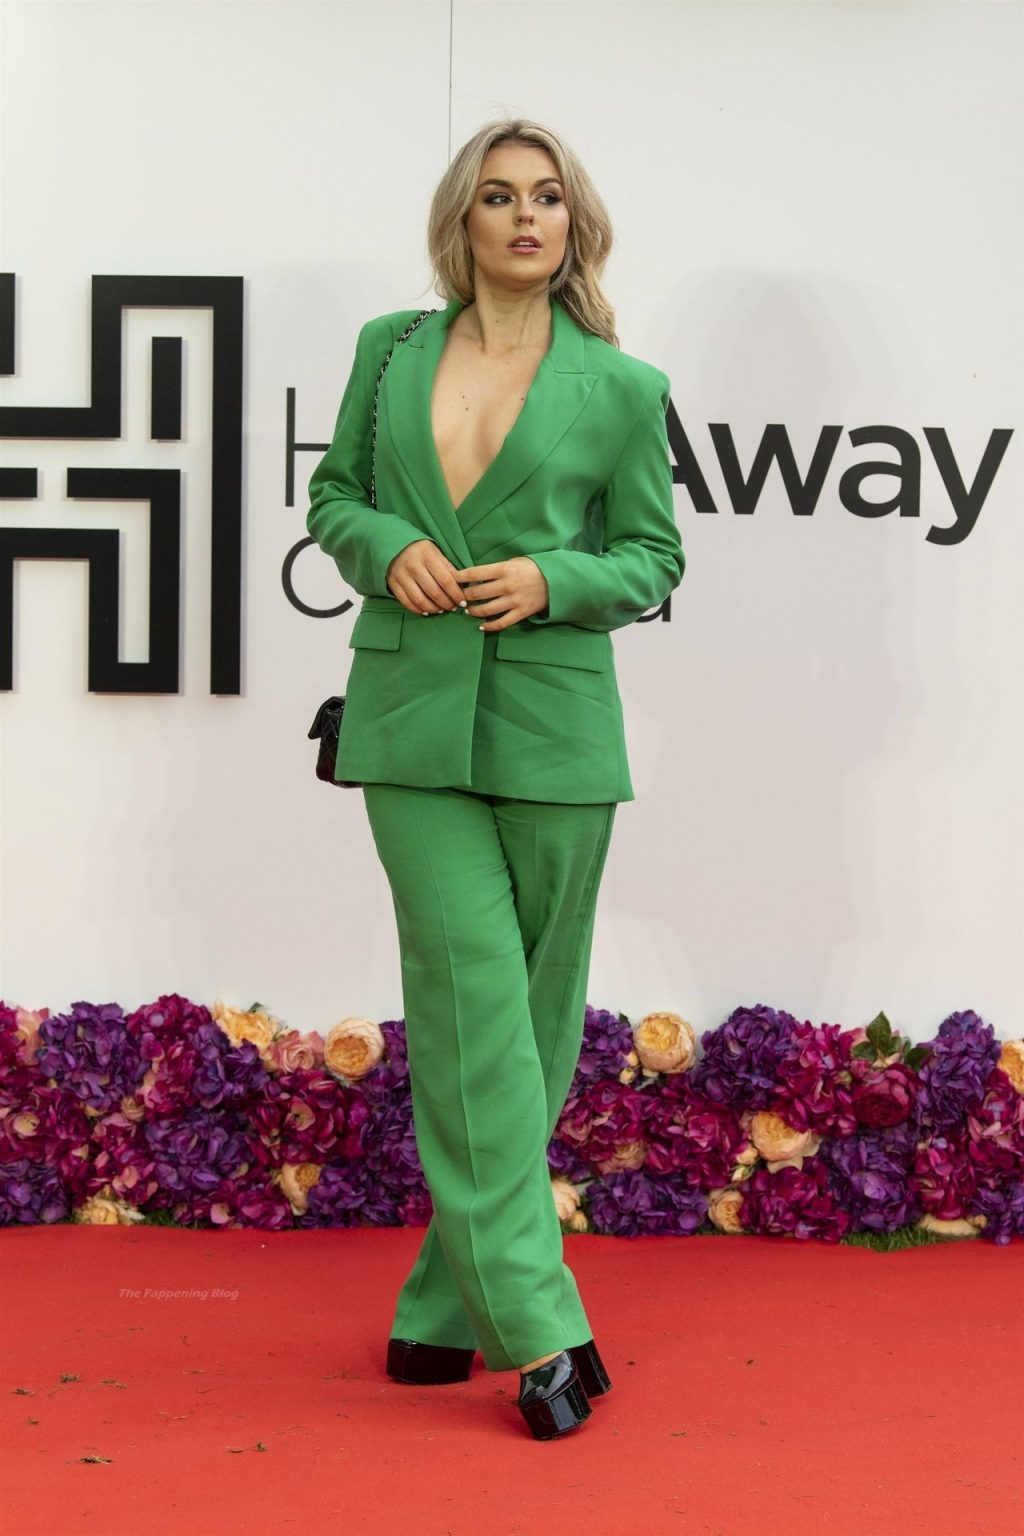 Tallia Storm Goes Braless Under a Green Suit at the Screening of Wonder Woman 1984 (57 Photos)